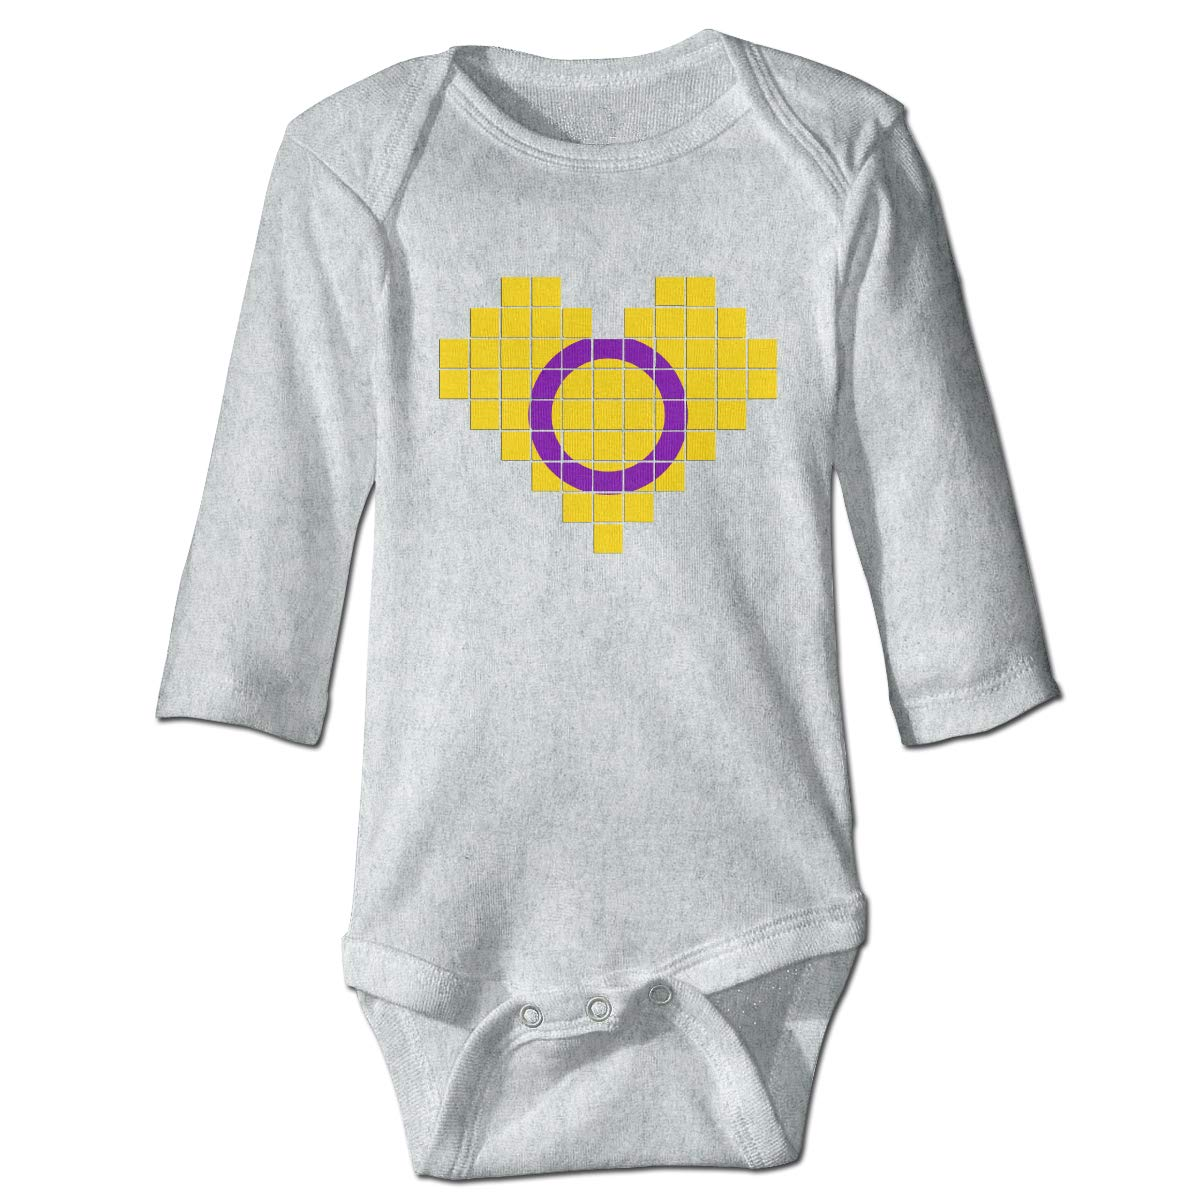 A14UBP Infant Baby Boys Girls Long Sleeve Romper Bodysuit Intersex Pride Flag Playsuit Outfit Clothes